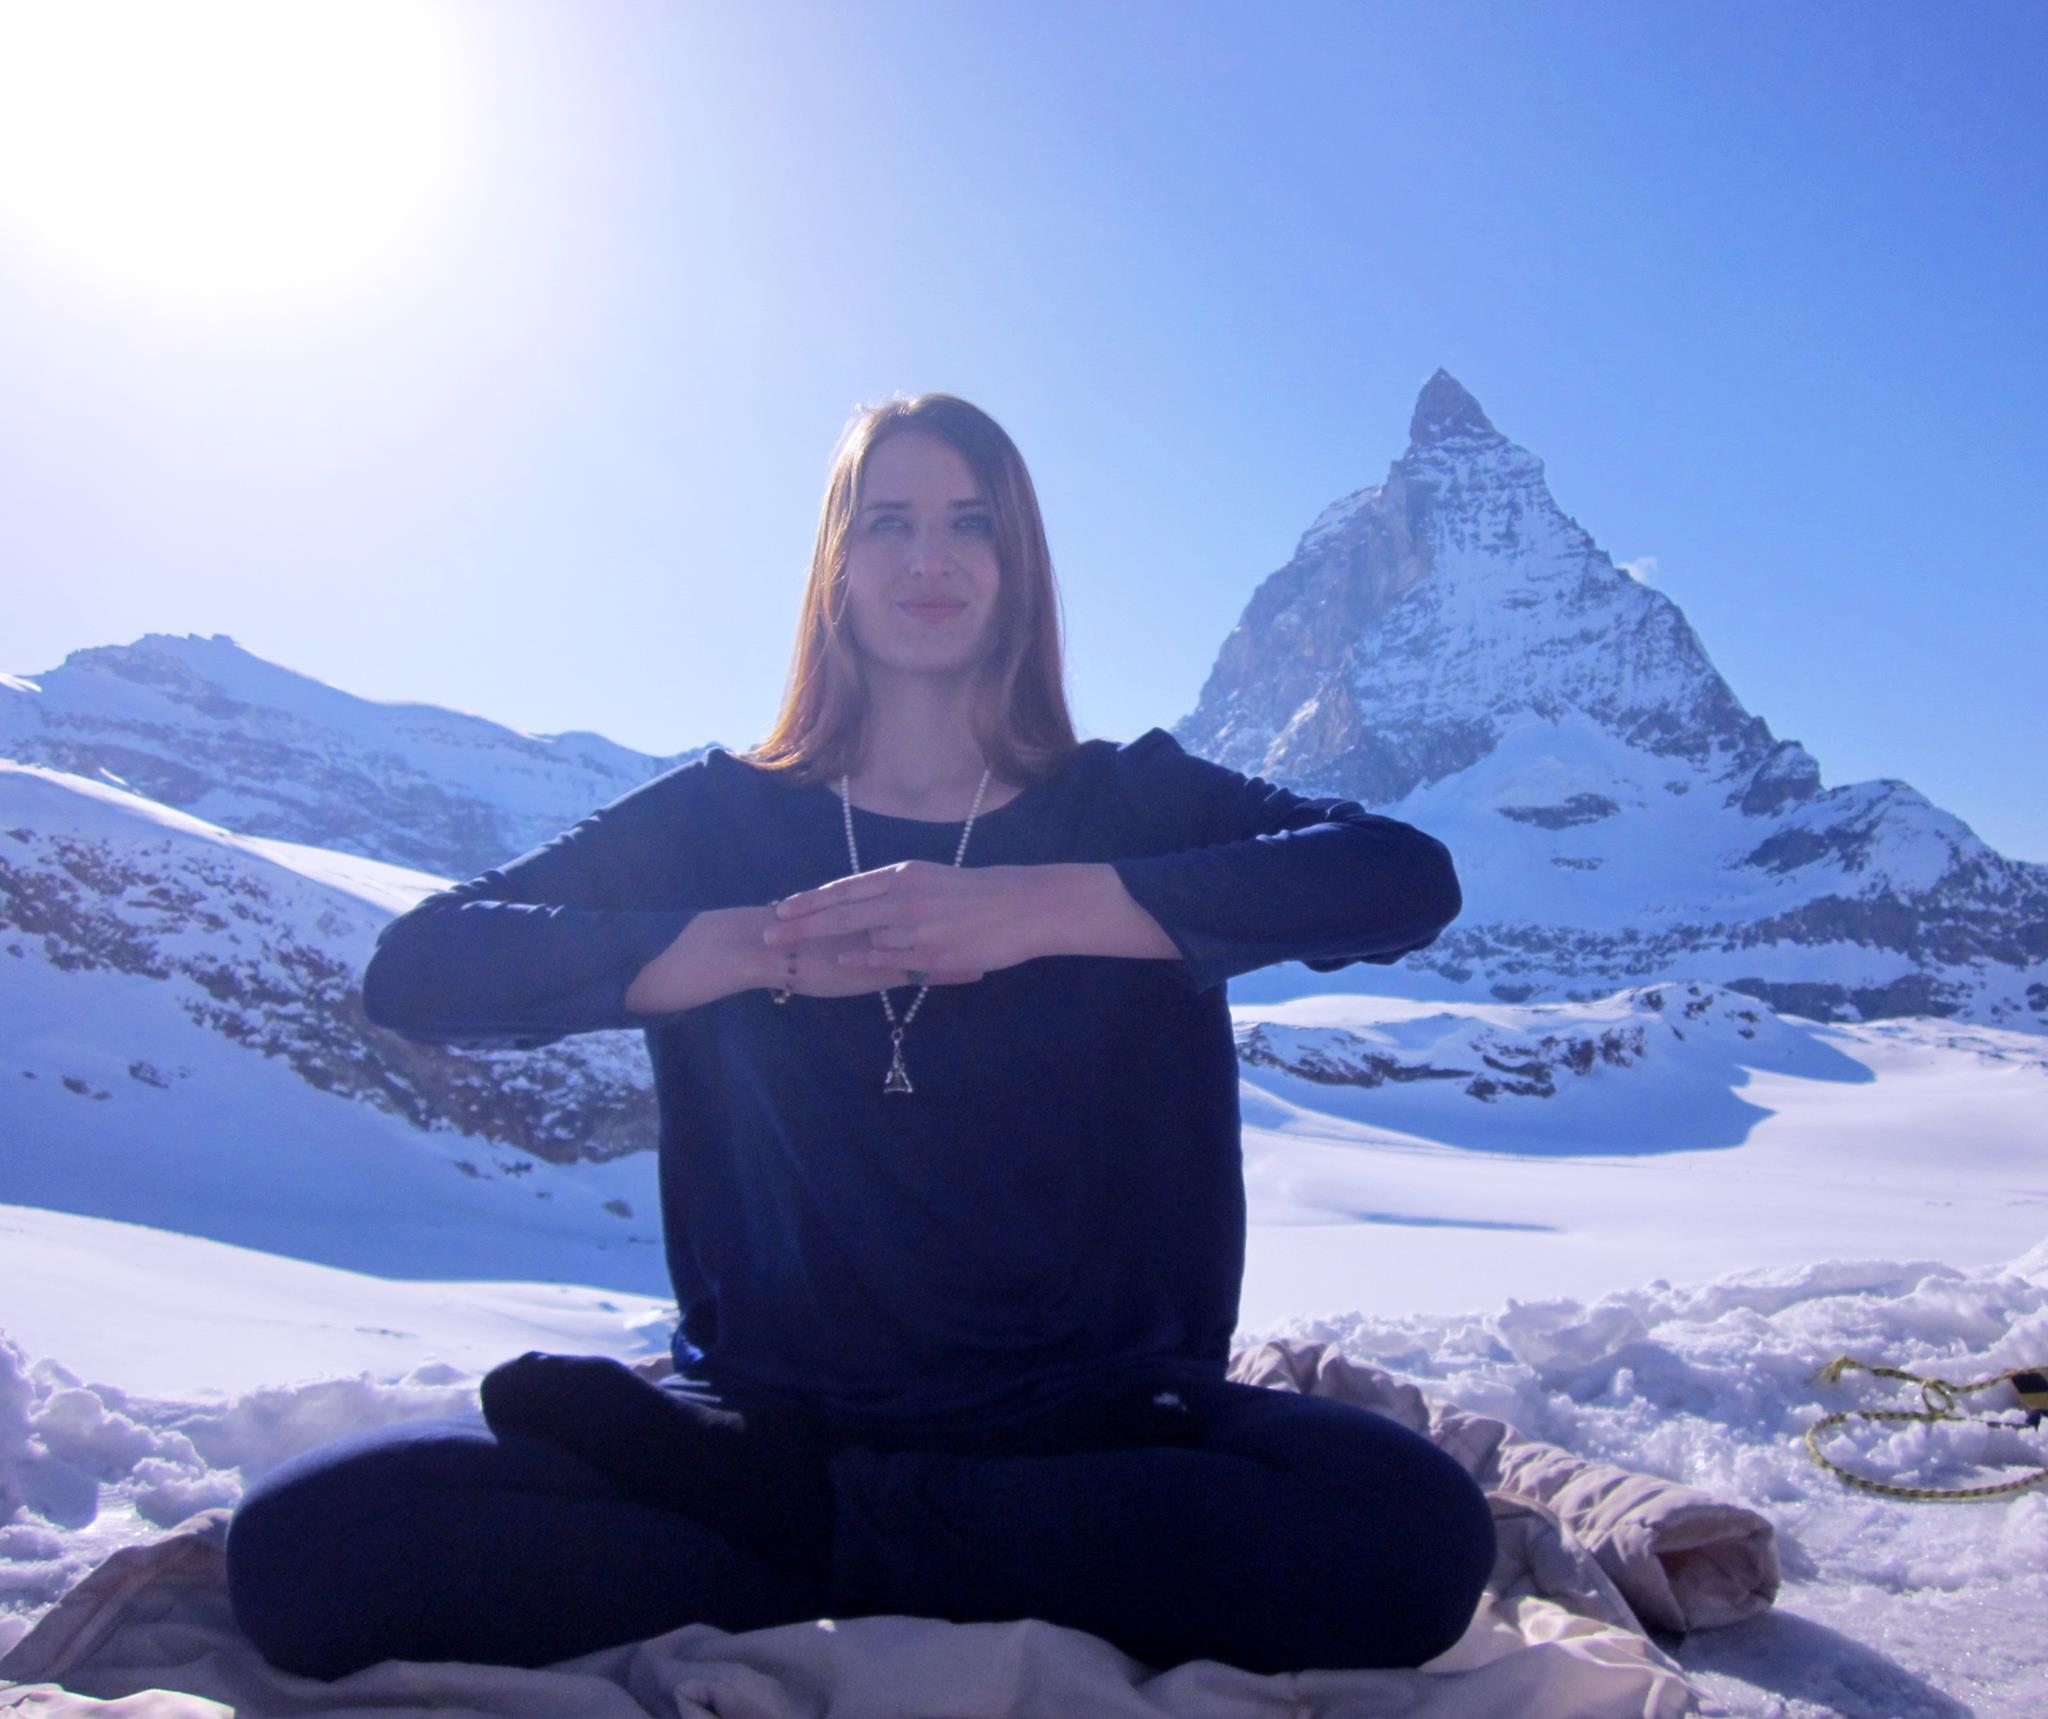 Himalaya Halle Tuesday, 7 April 2020, 8-8.30pm Shiva Dhyan Yoga Meditation Introduction By Shivani Himalaya (katrin Suter) For Women - Vivamost!